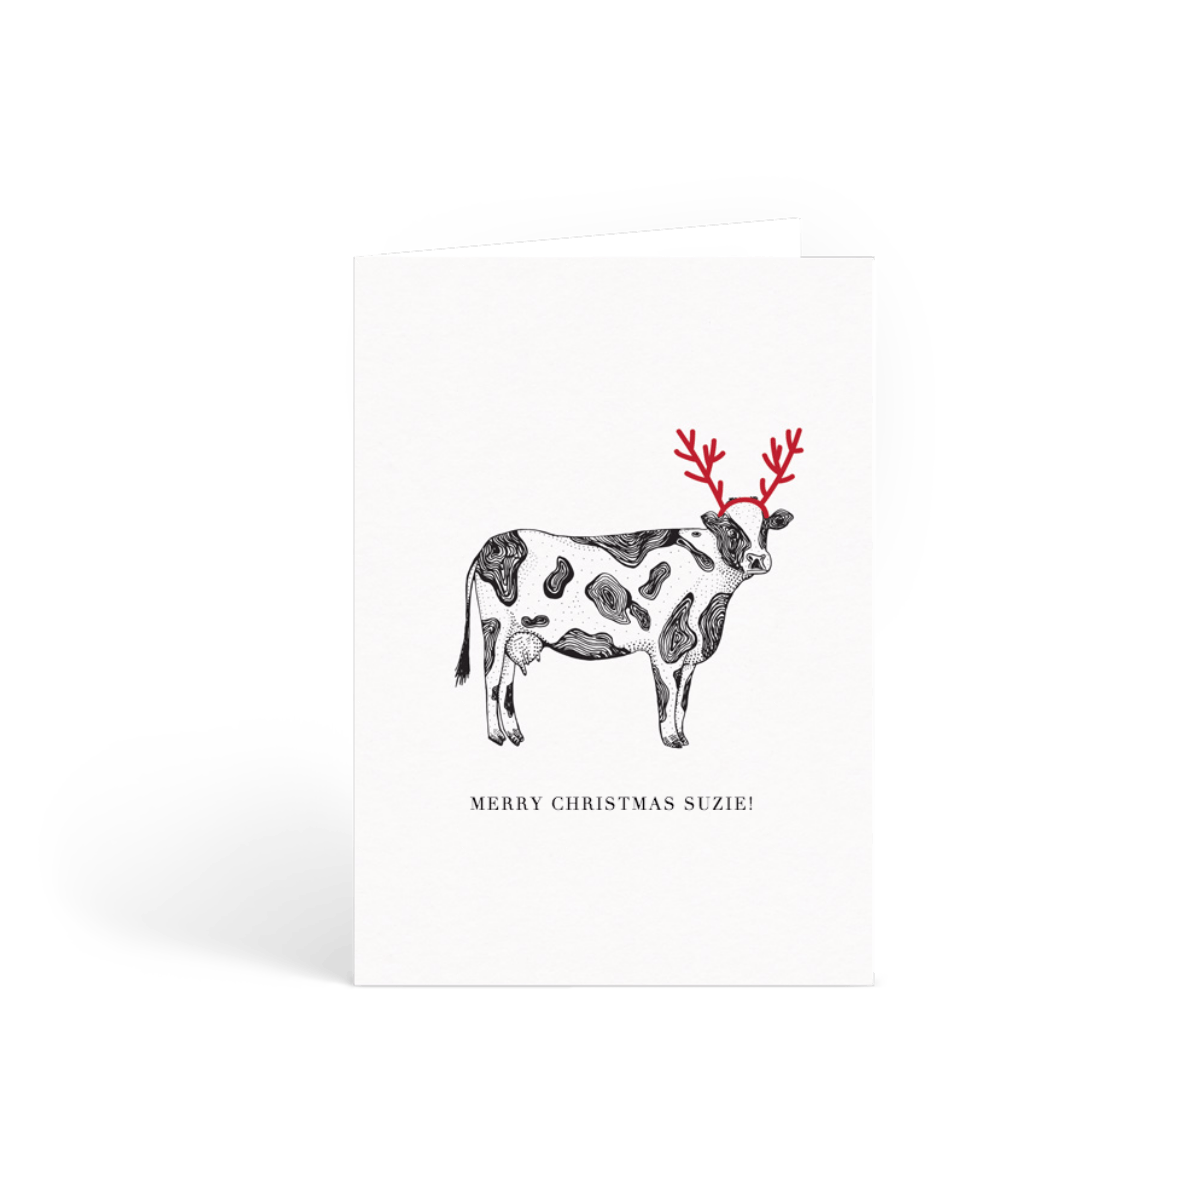 Https%3a%2f%2fwww.papier.com%2fproduct image%2f12458%2f2%2fchristmas cow 3137 front 1476958072.png?ixlib=rb 1.1